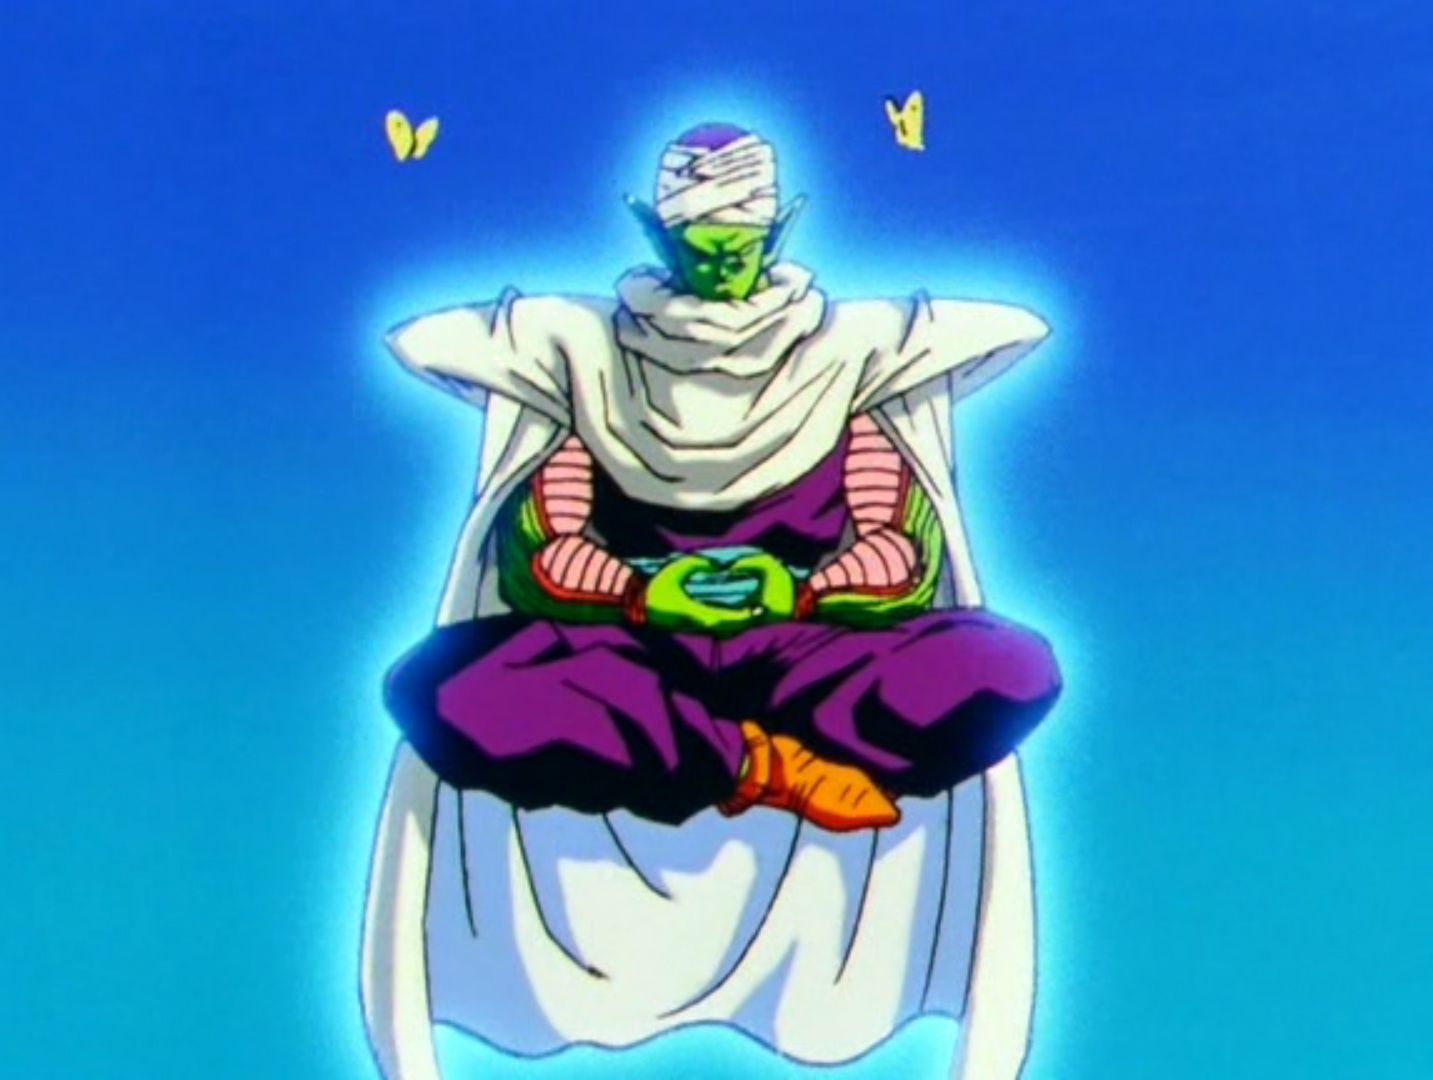 Piccolo Dragon Ball Z Hd Wallpaper Wallpaper Source With Images